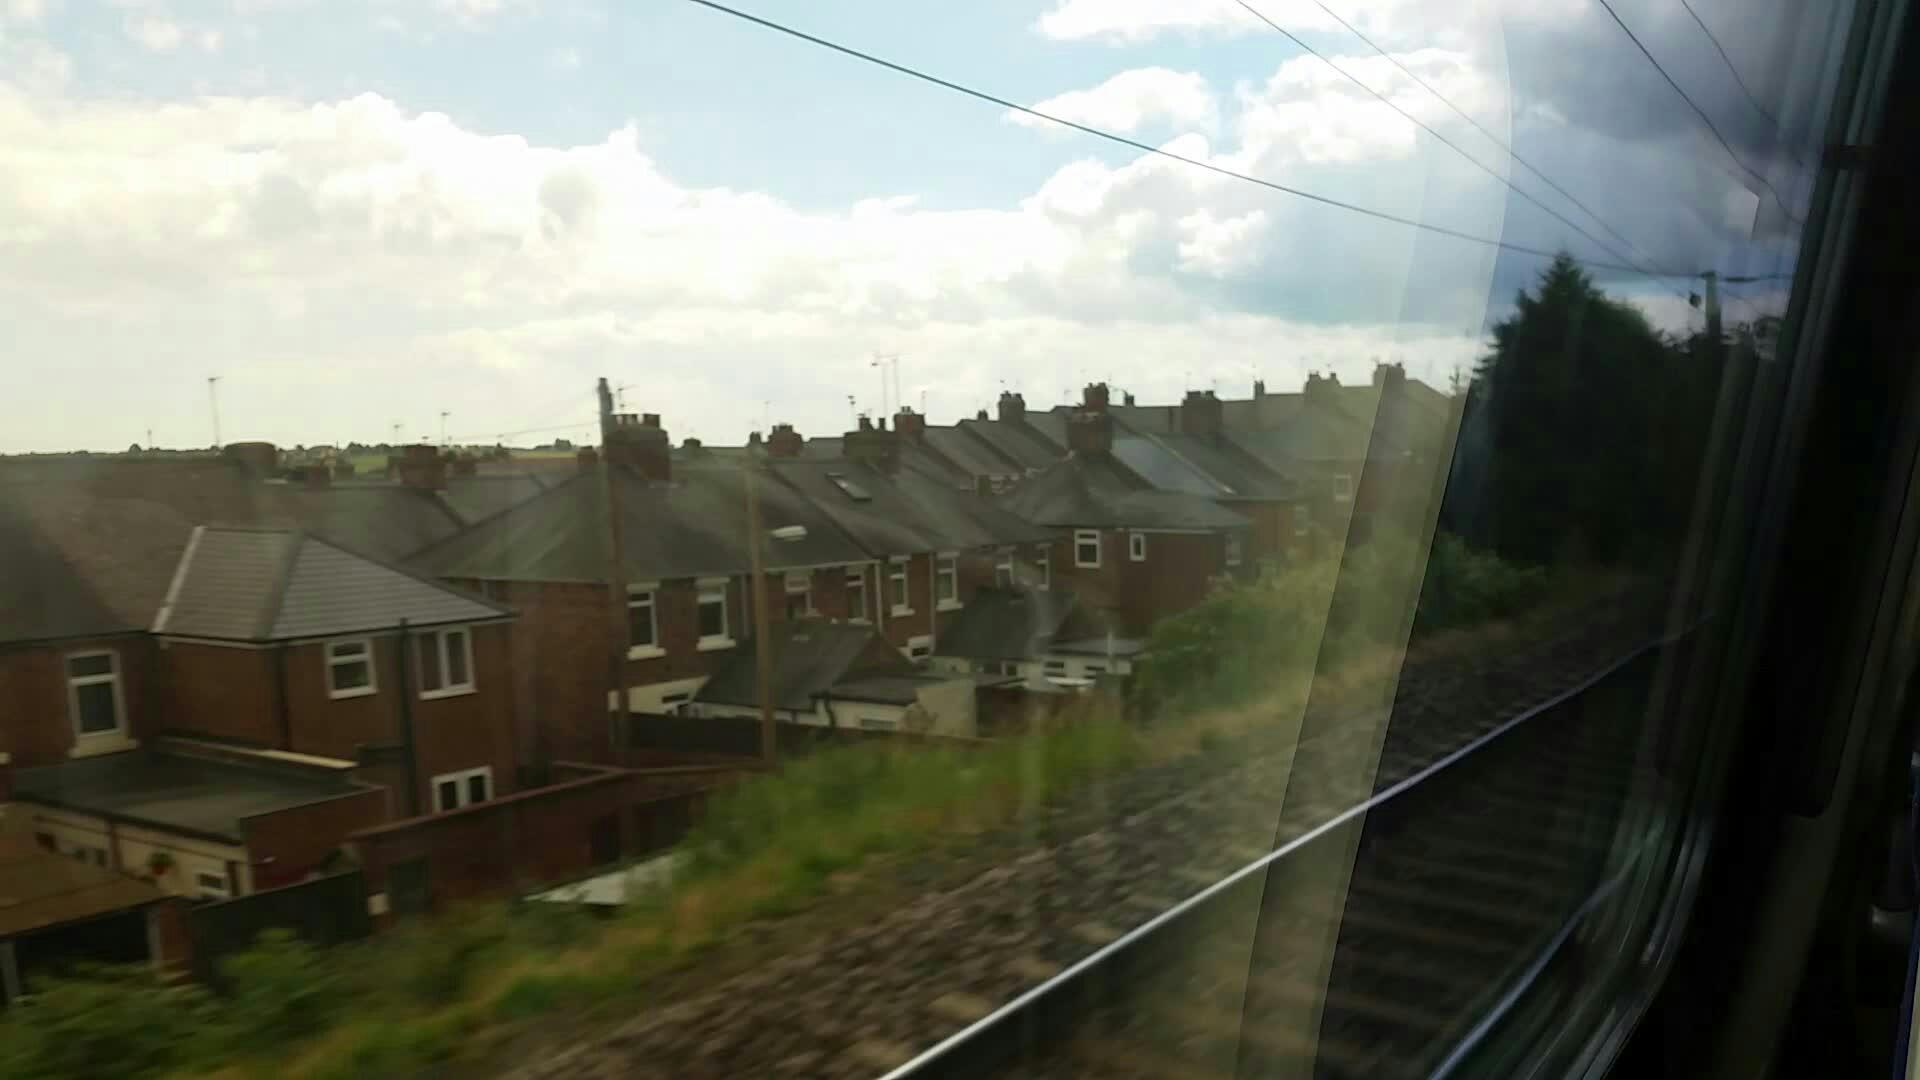 Entering Cheter Le Street on the East Coast Mainline